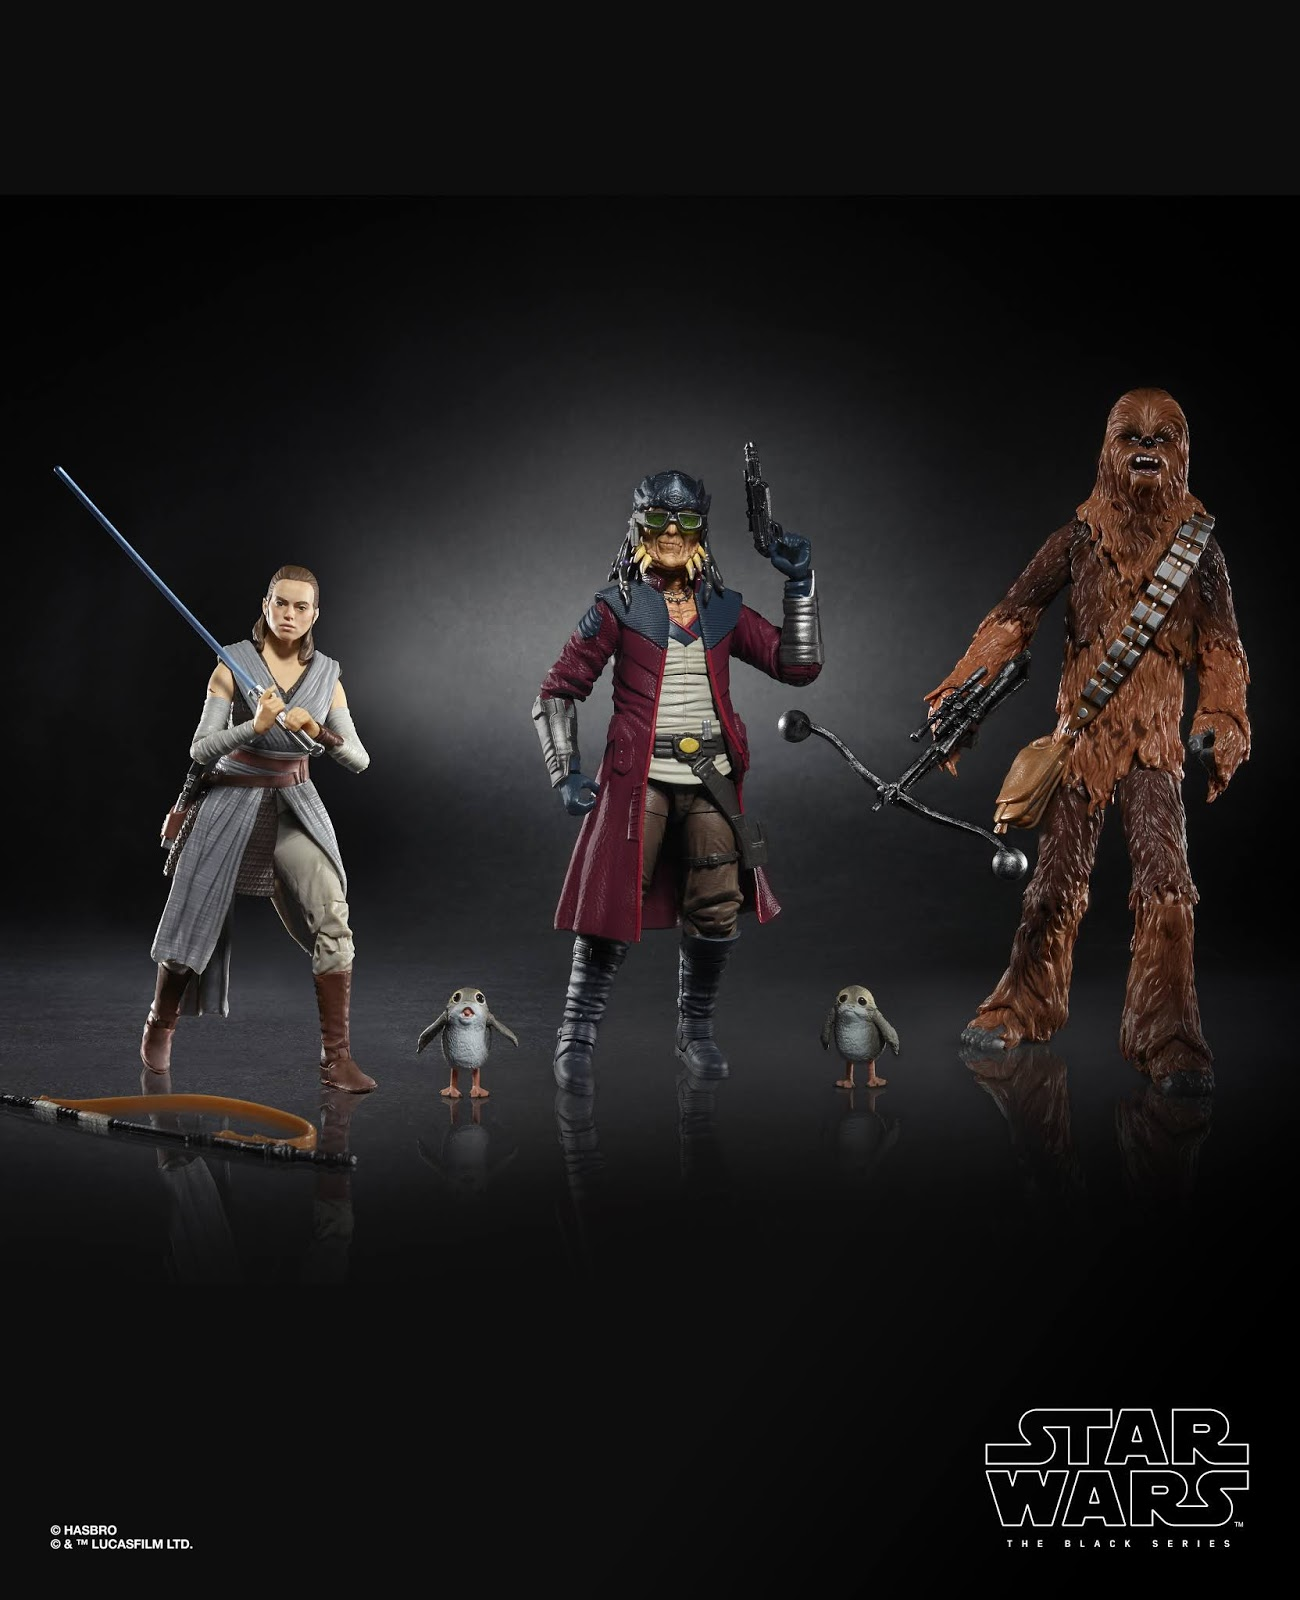 STAR WARS THE BLACK SERIES 6-INCH SMUGGLER'S RUN 4-PACK